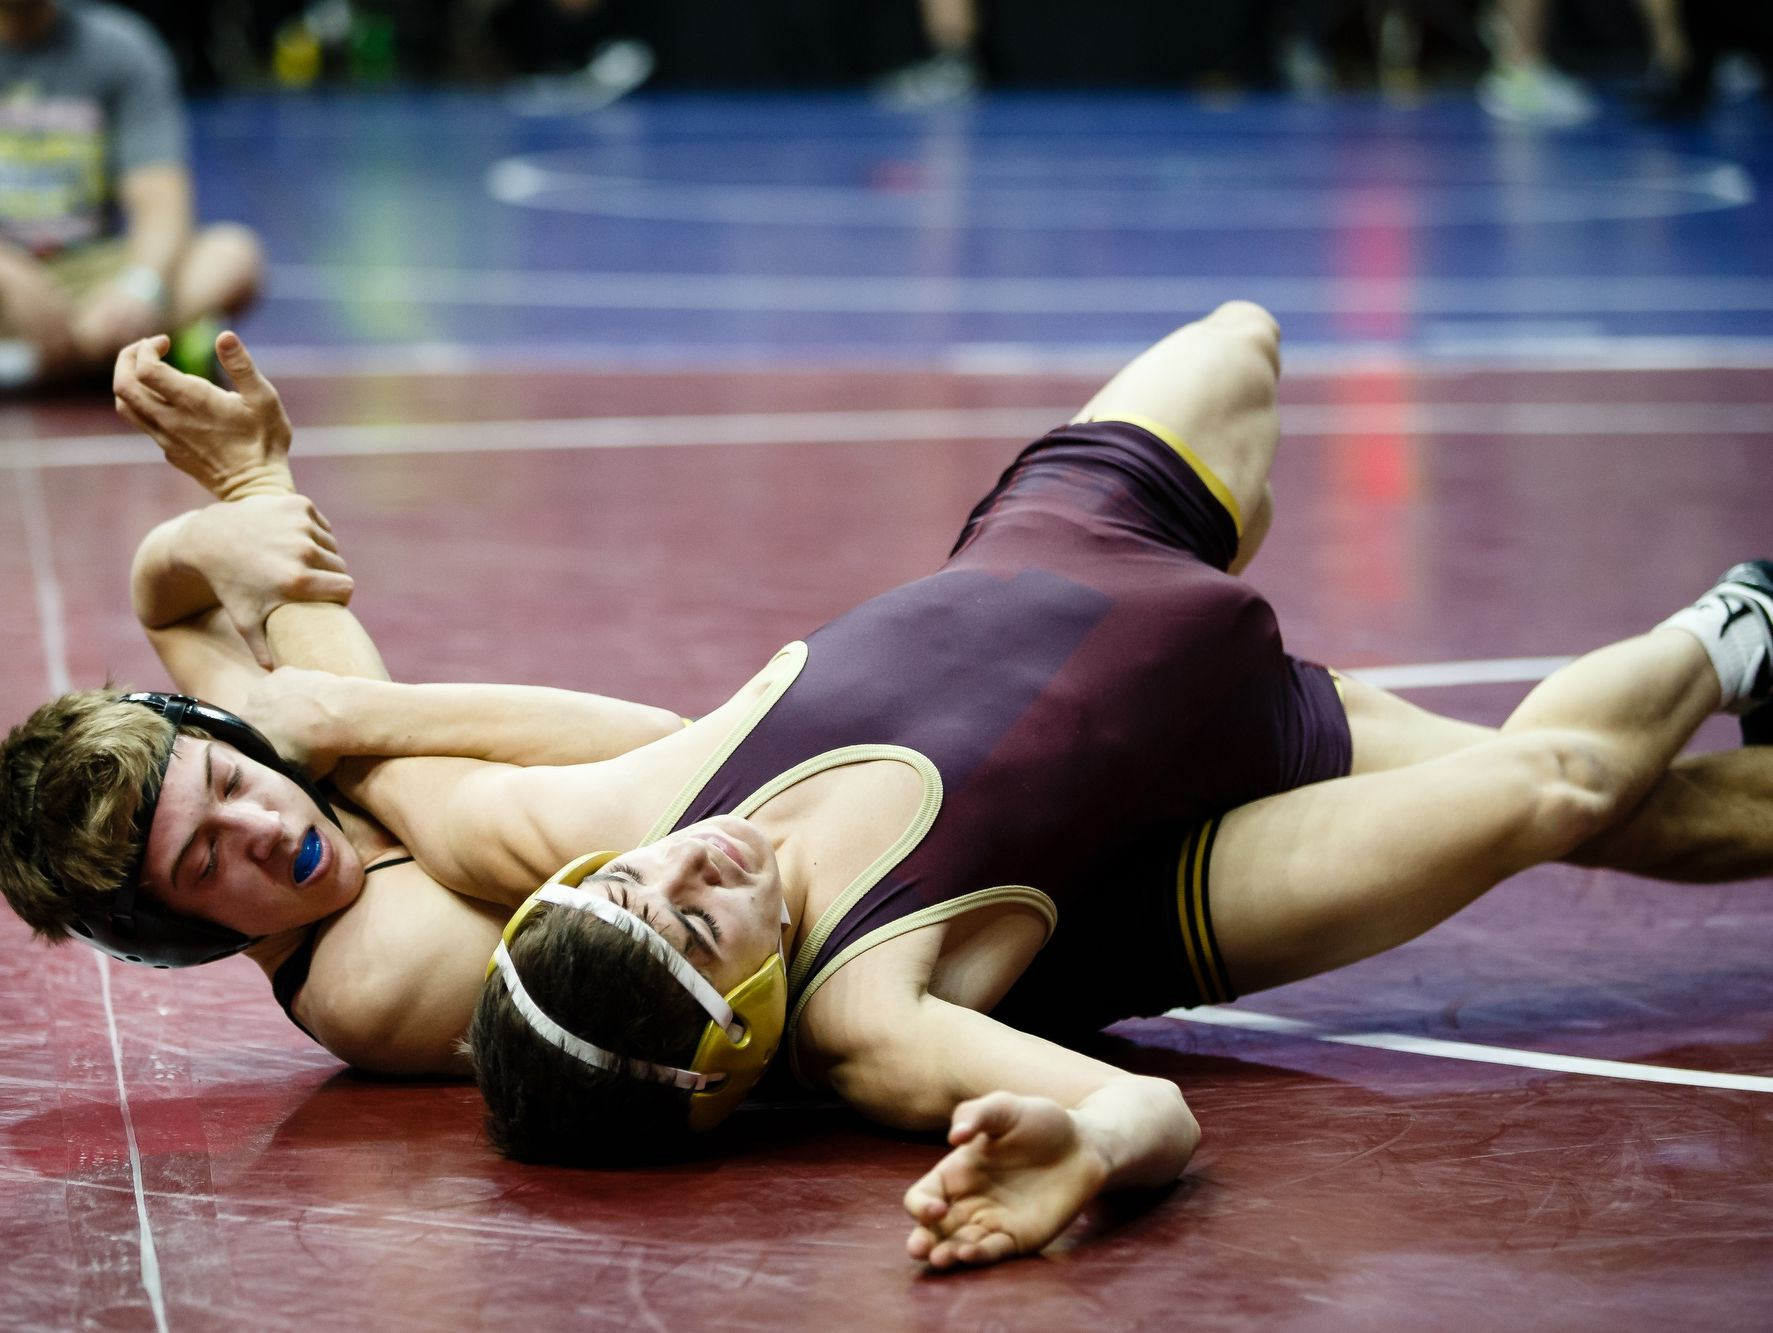 during their match at the Iowa high school state wrestling tournament on Thursday, Feb. 16, 2017 in Des Moines.